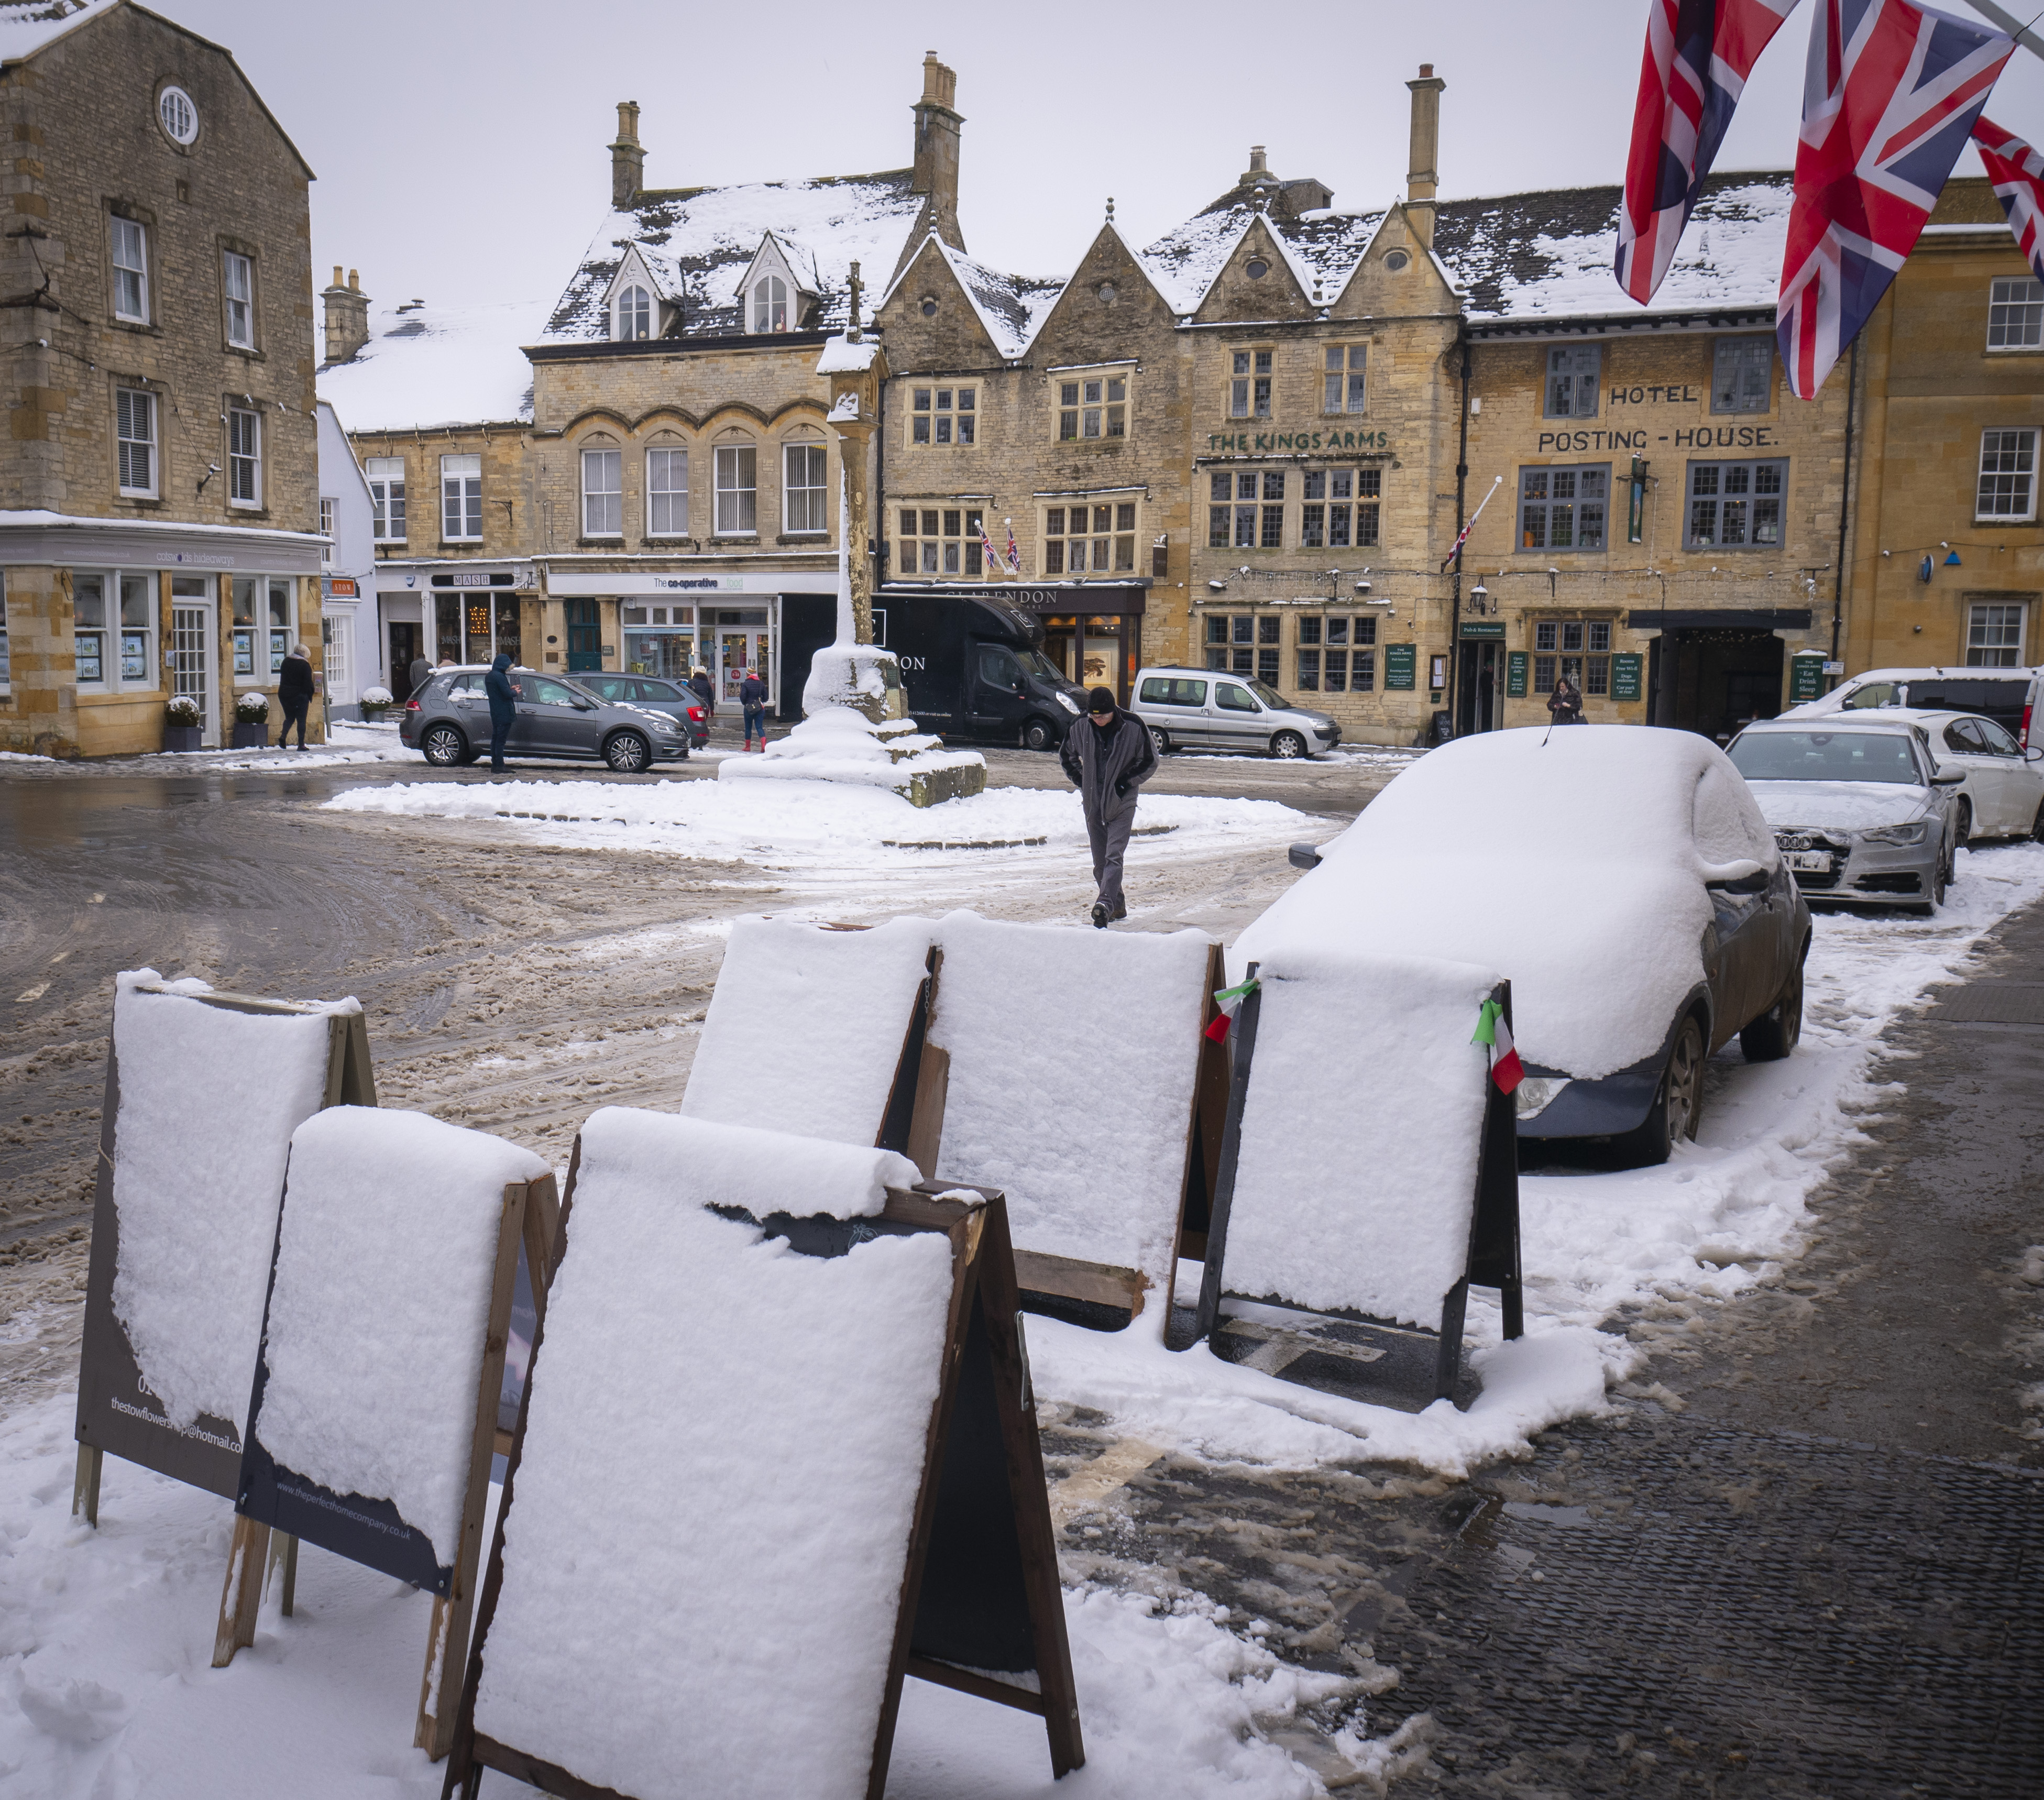 Stow-on-the-Wold during the January 2019 snowfall.